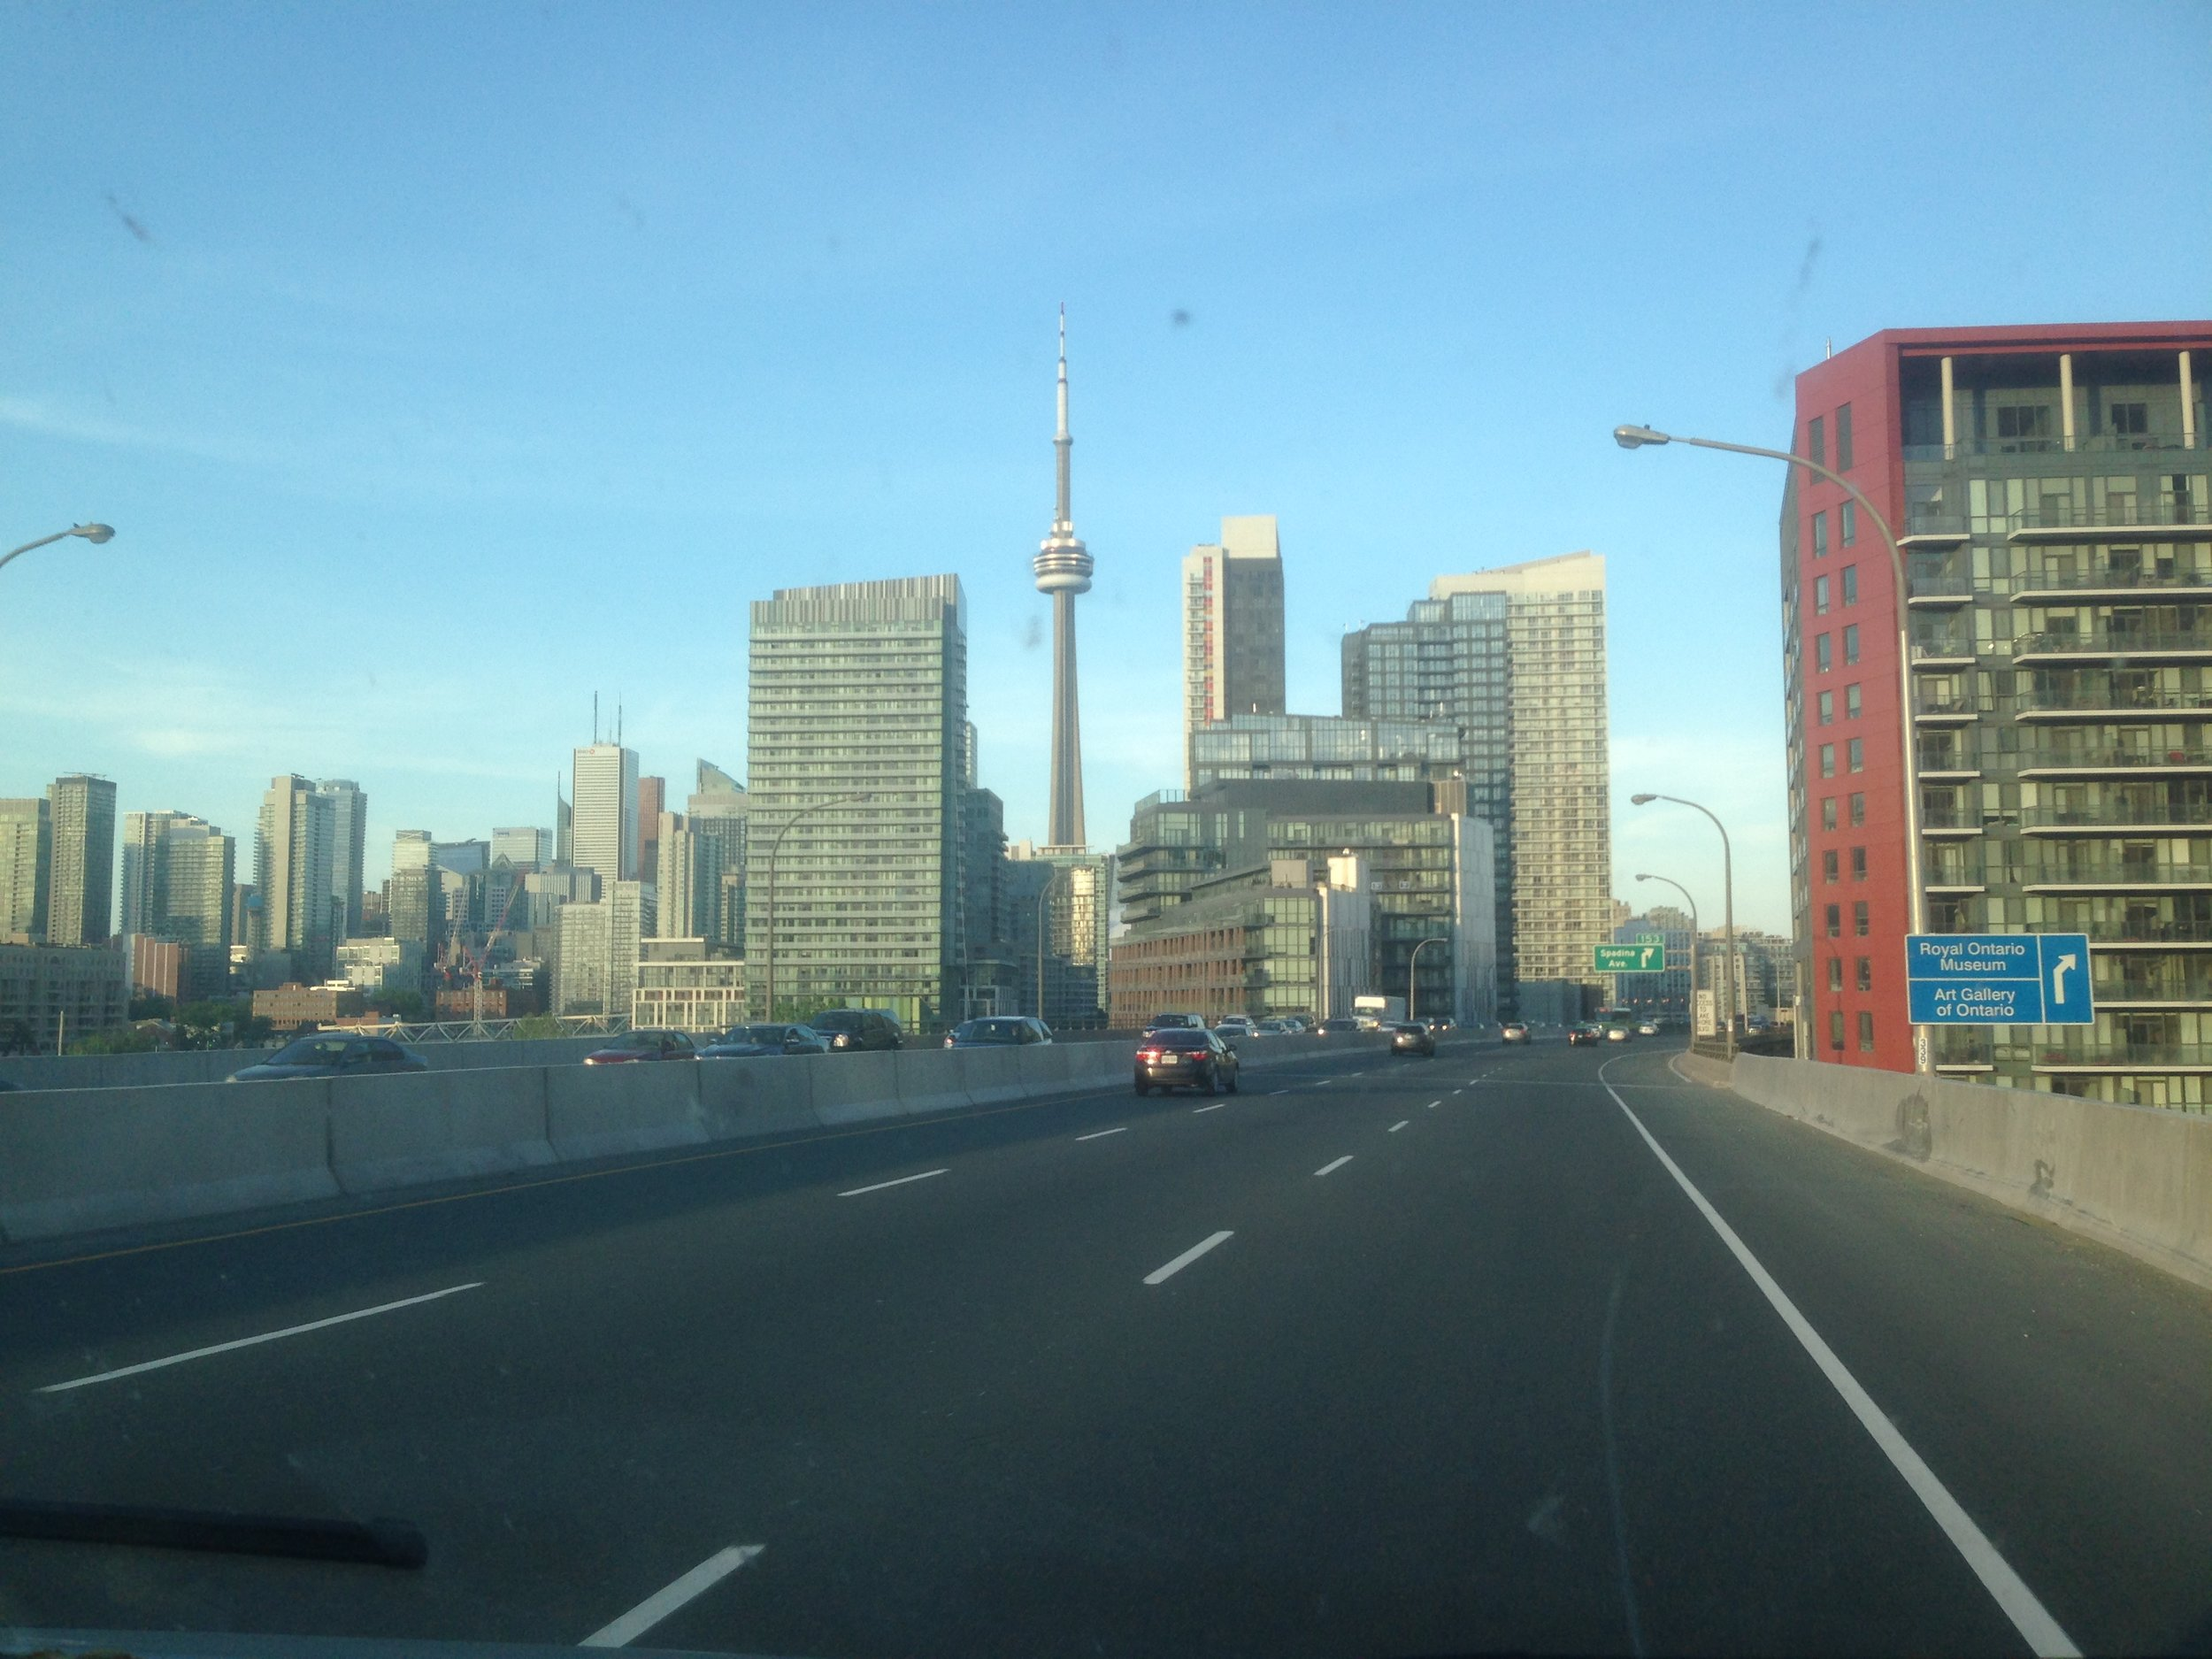 TORONTO in all it's glory!